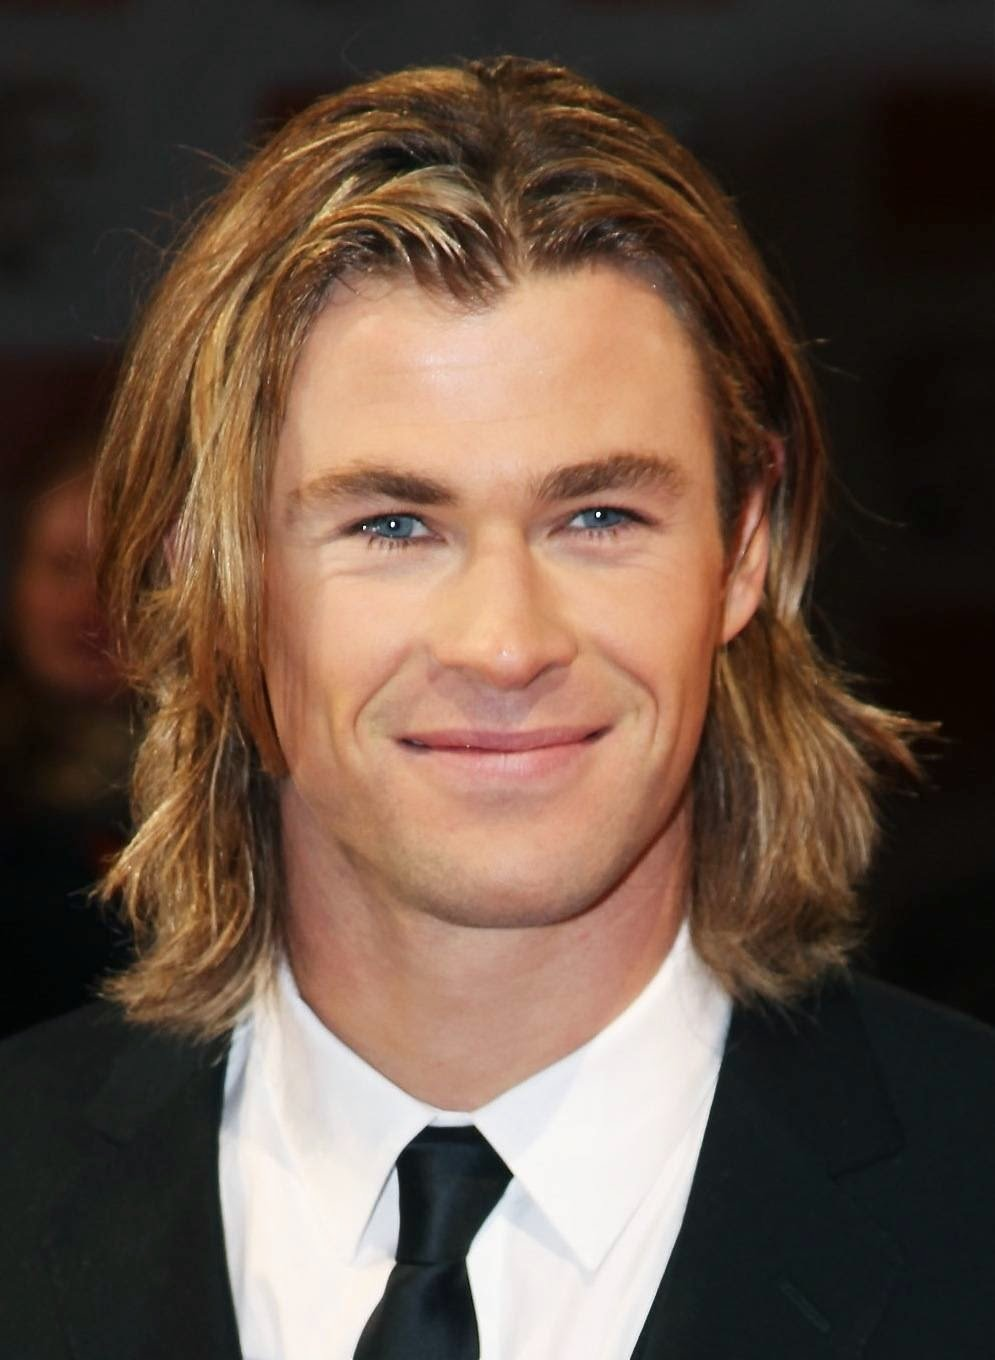 The Best Chris Hemsworth Thor To Avengers Bio Life Movies List Workout With Decent Images Pictures